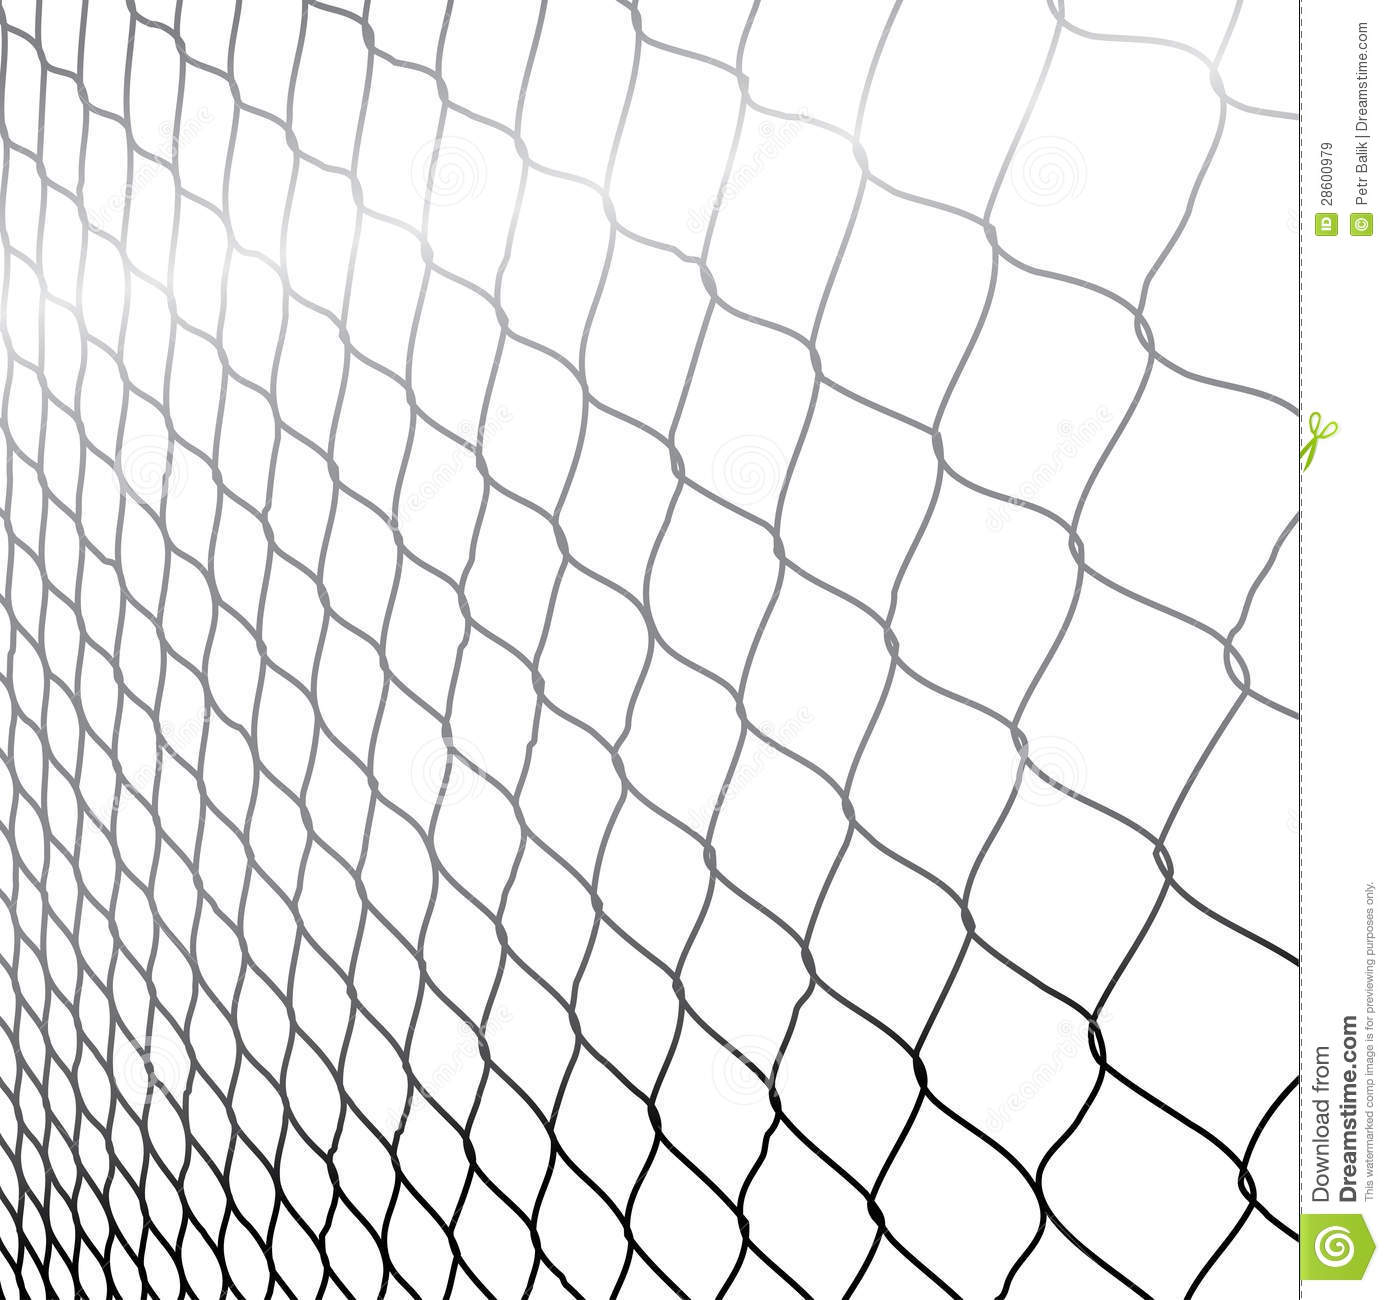 Wired Fence In Perspective Royalty Free Stock Images